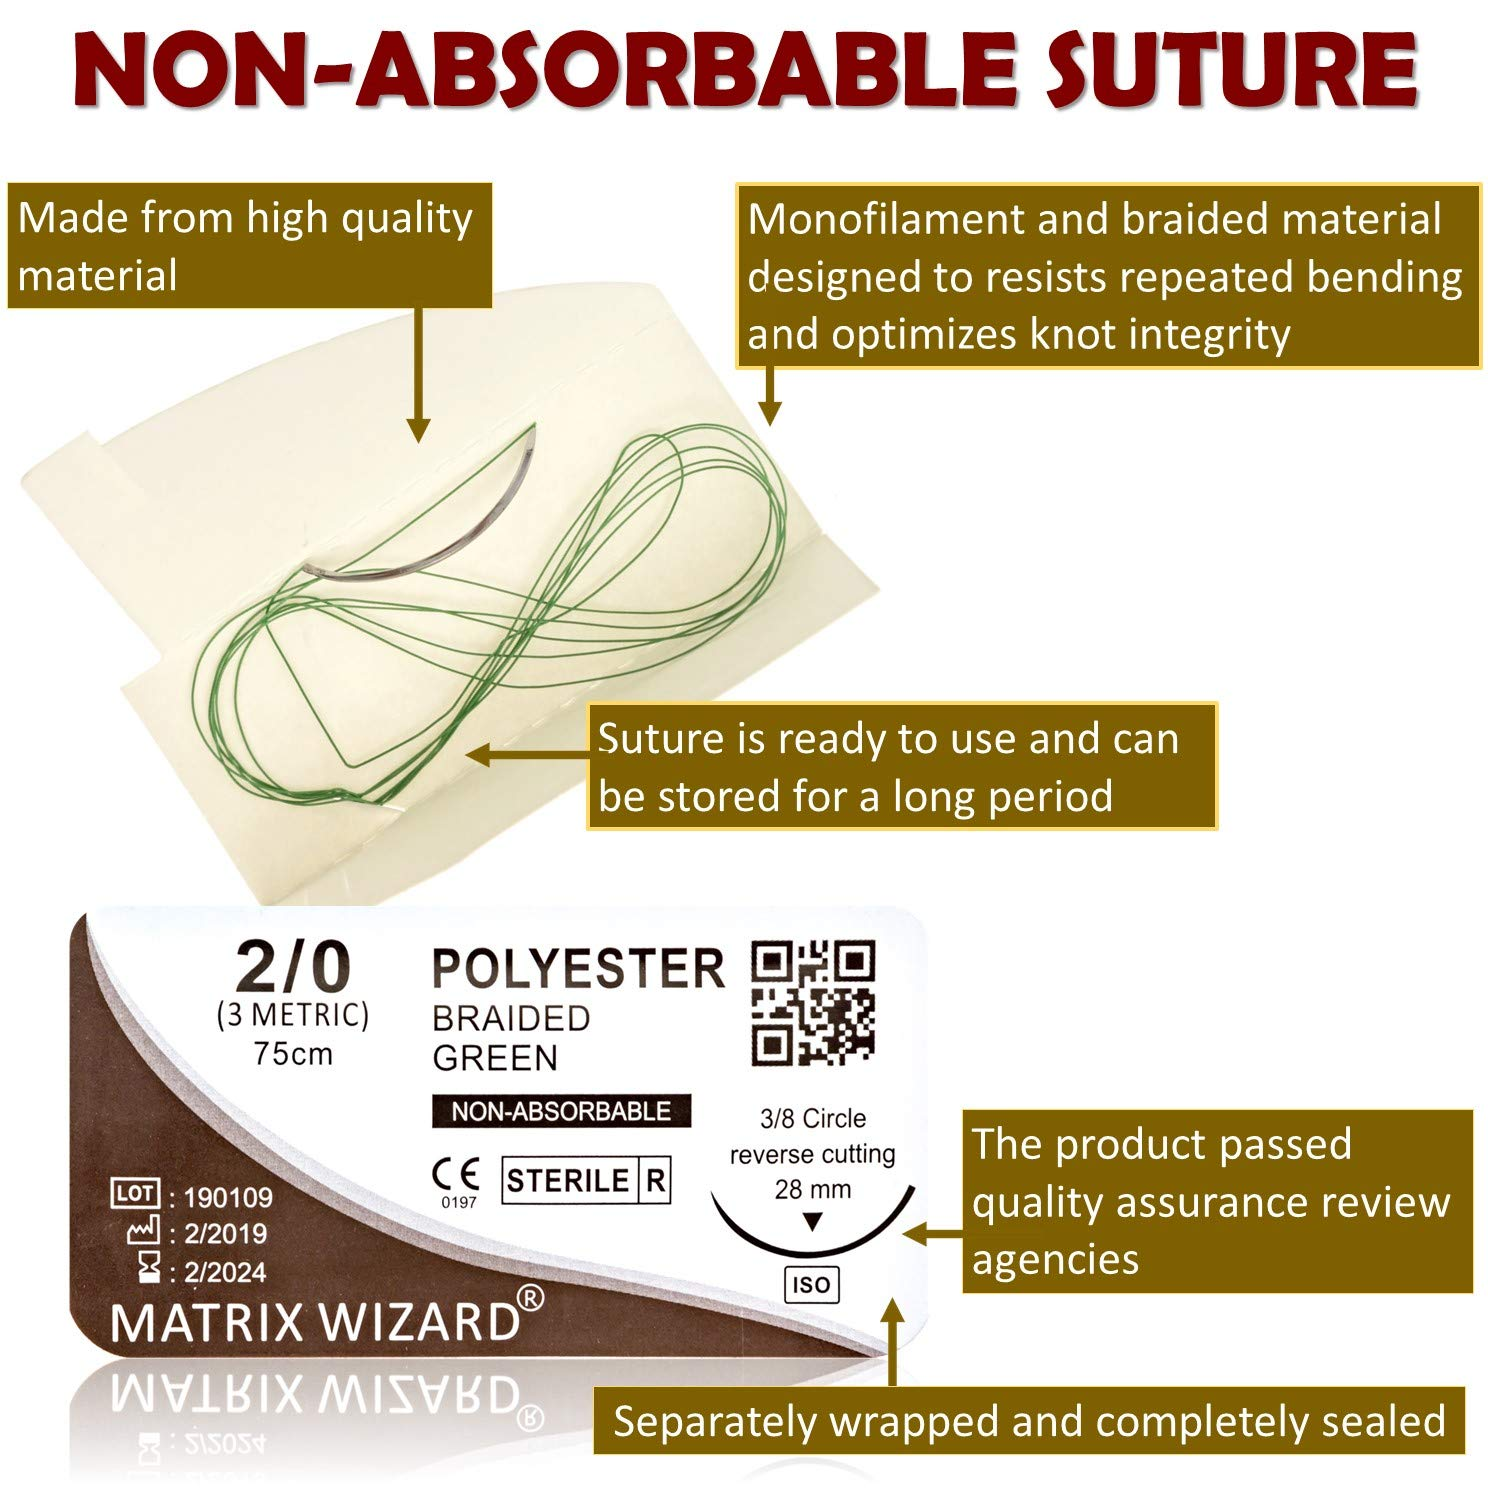 Mixed Sutures Thread with Needle (Absorbable: Chromic Catgut; Non-Absorbable: Nylon, Silk, Polyester, Polypropylene) - Surgical Wound Practice Kit, Emergency First Aid Demo (2-0, 3-0, 4-0, 5-0) 24Pk by Matrix Wizard (Image #5)